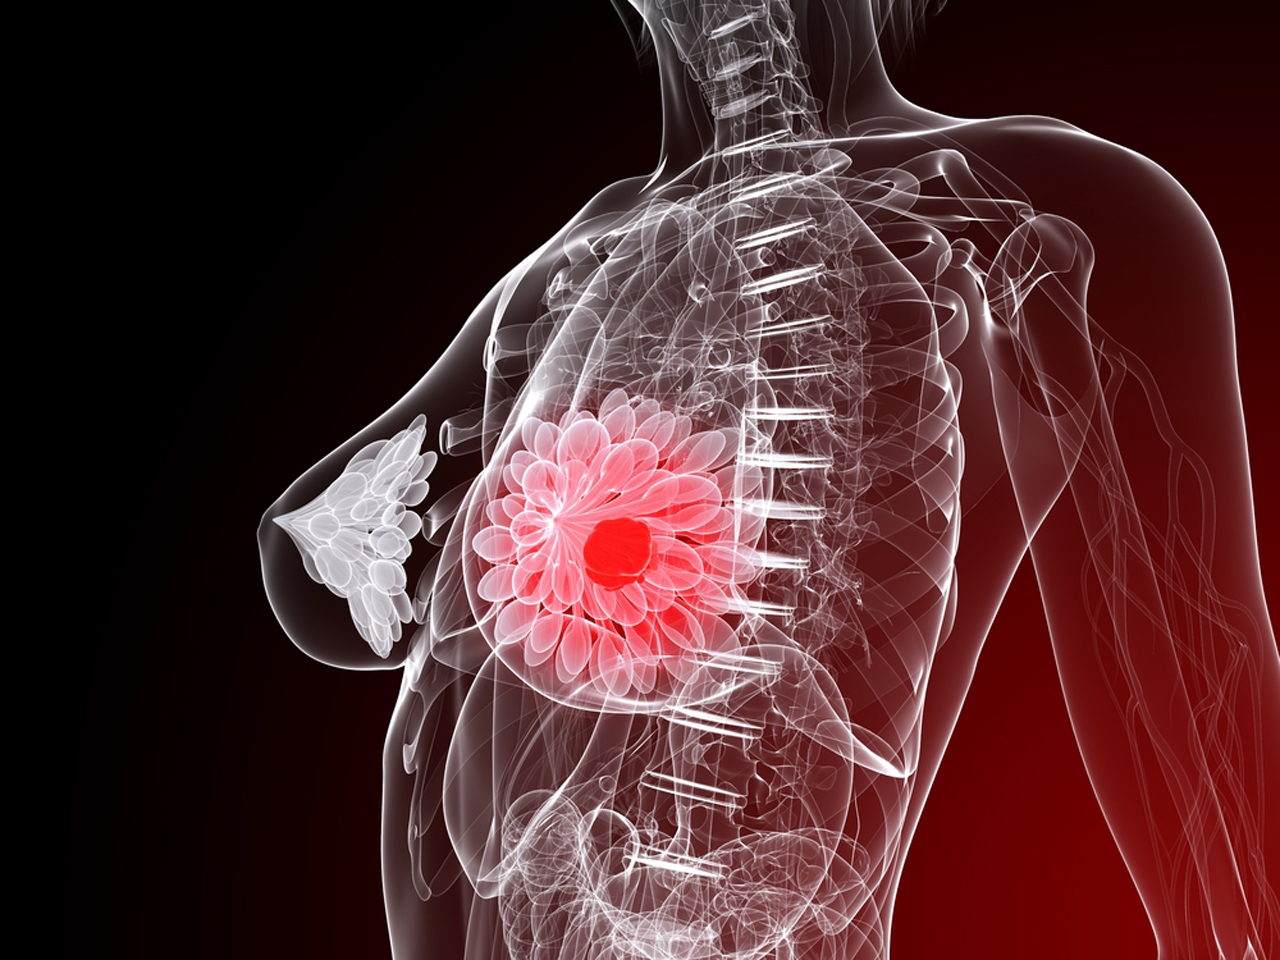 Neo suppressants and breast cancer